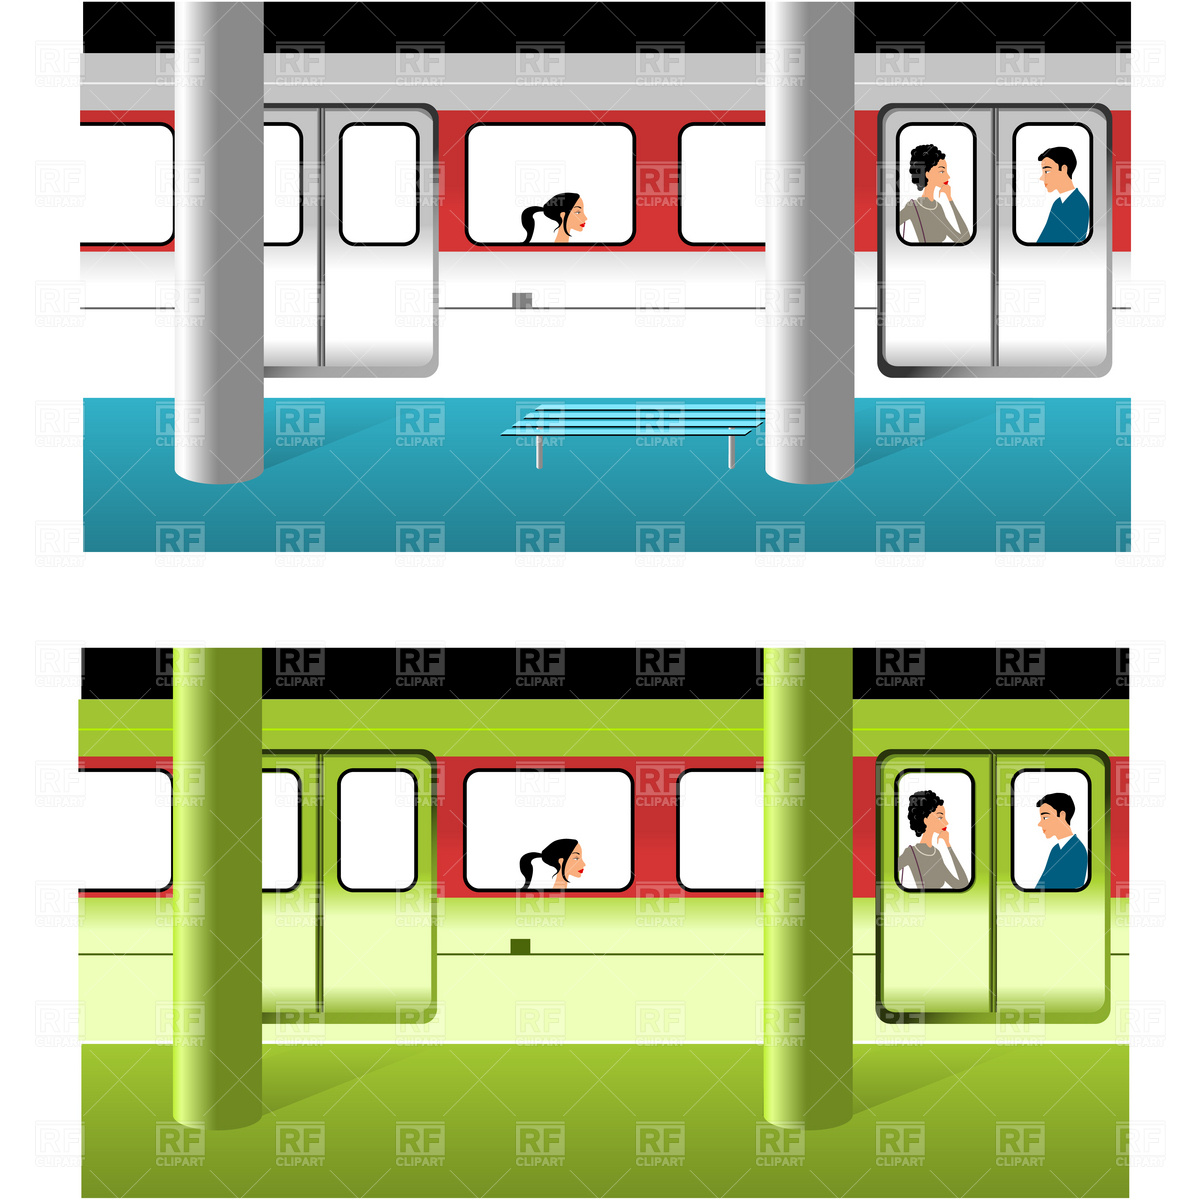 Subway station Vector Image #1914.